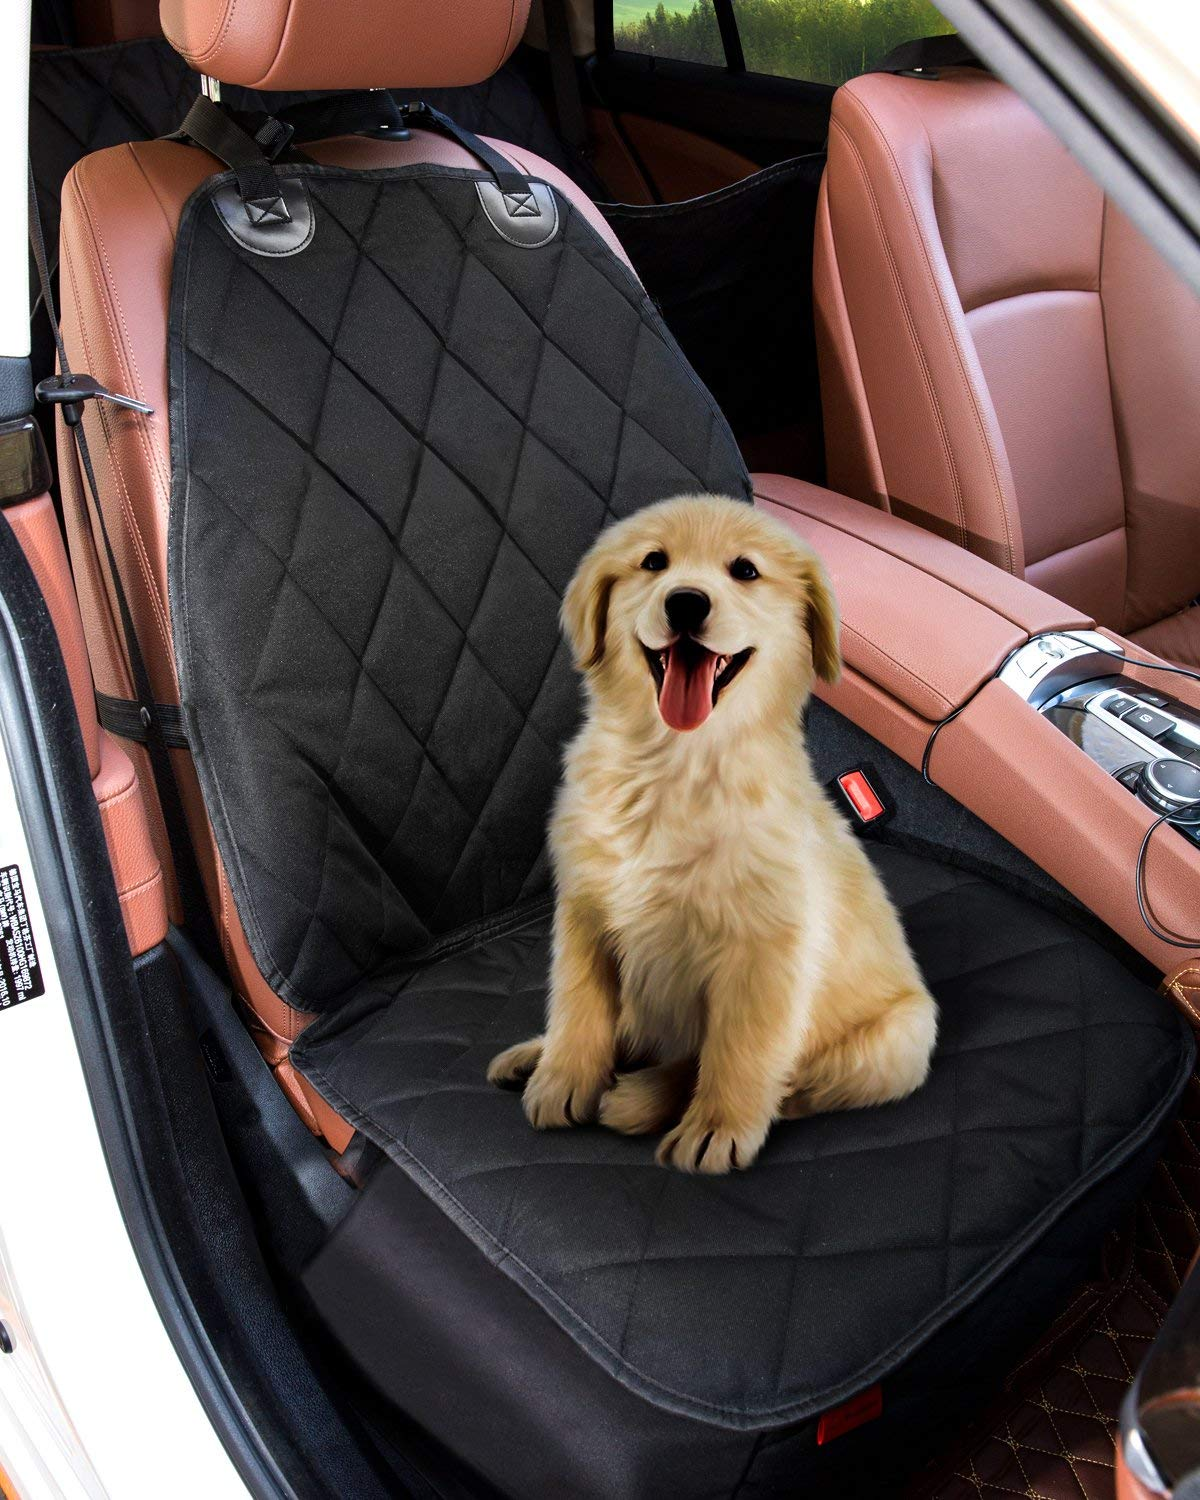 Pet Dog Car Seat Cover Protector, Waterproof Nonslip Seat Covers for Dogs, Dog Seat Covers for Cars, Puppy Car Seat, Anti Scratch Blanket Mat for Truck Cars SUV Seat, Machine Washable